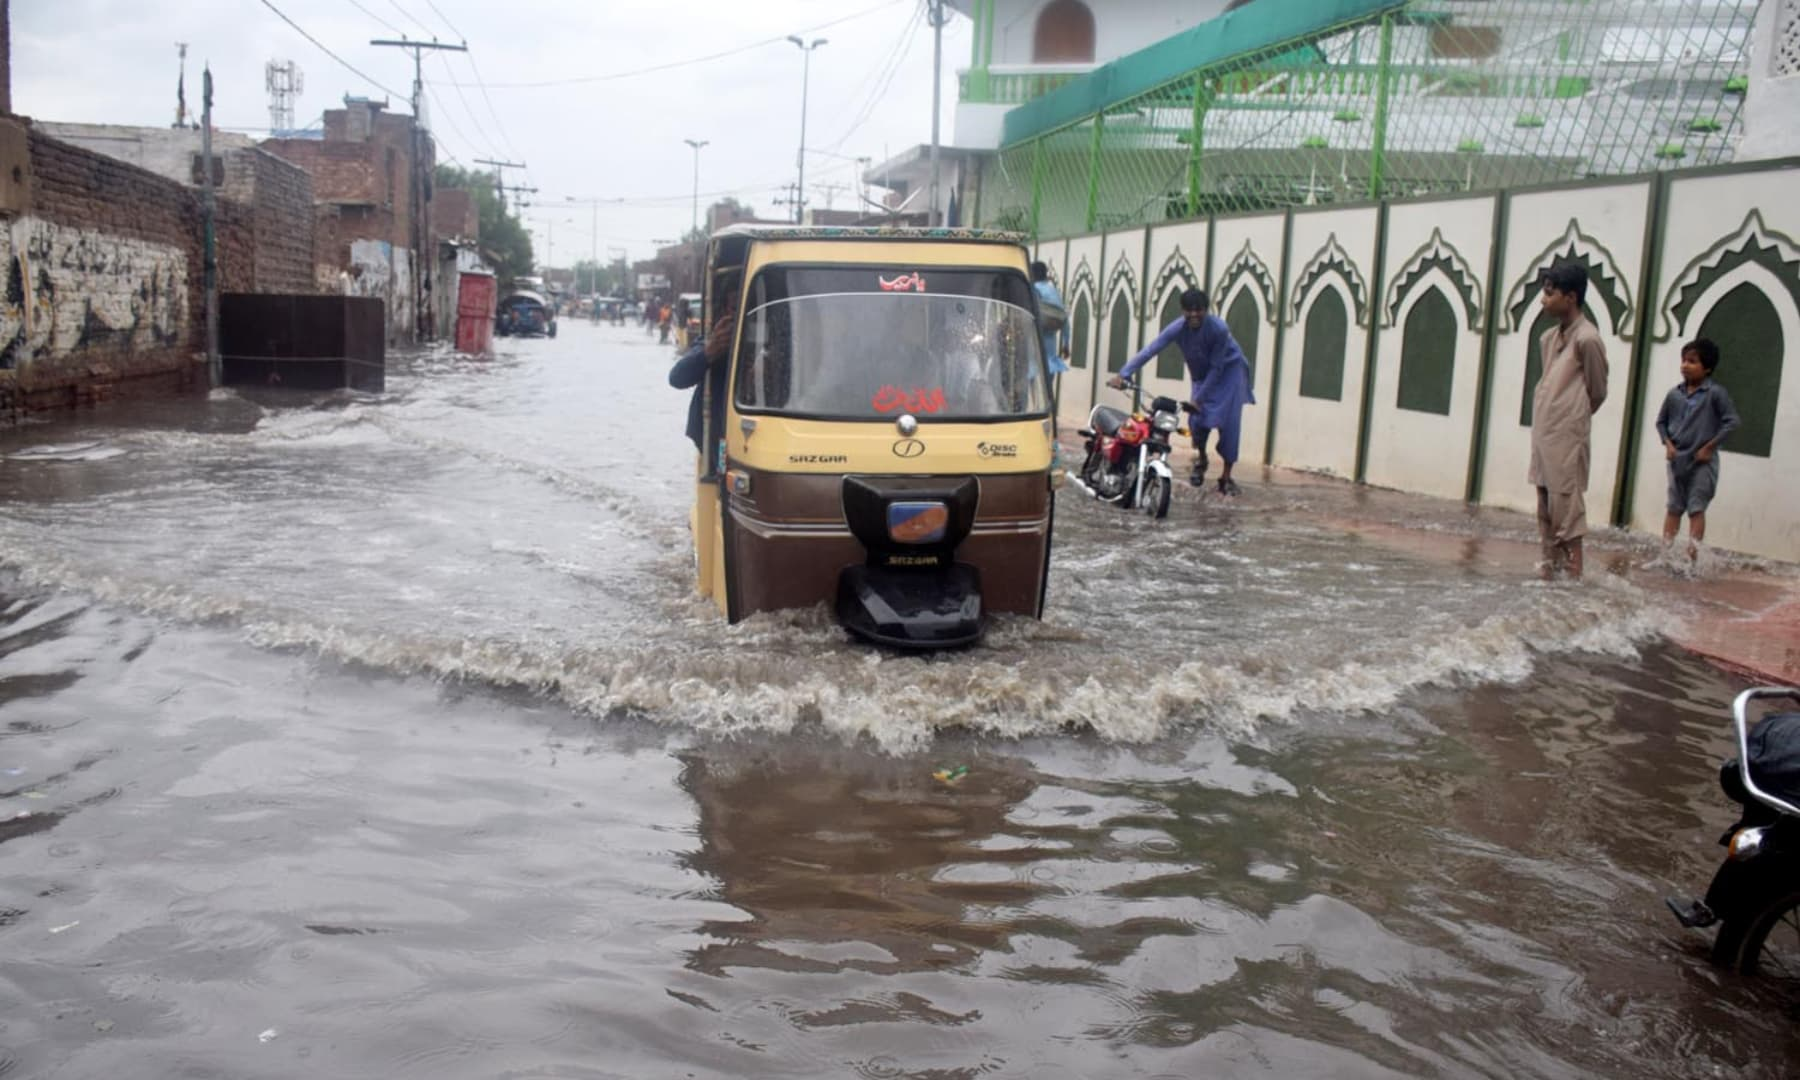 A view of a section of Makki Shah road submerged under rainwater on Tuesday afternoon in Hyderabad. — Umair Ali